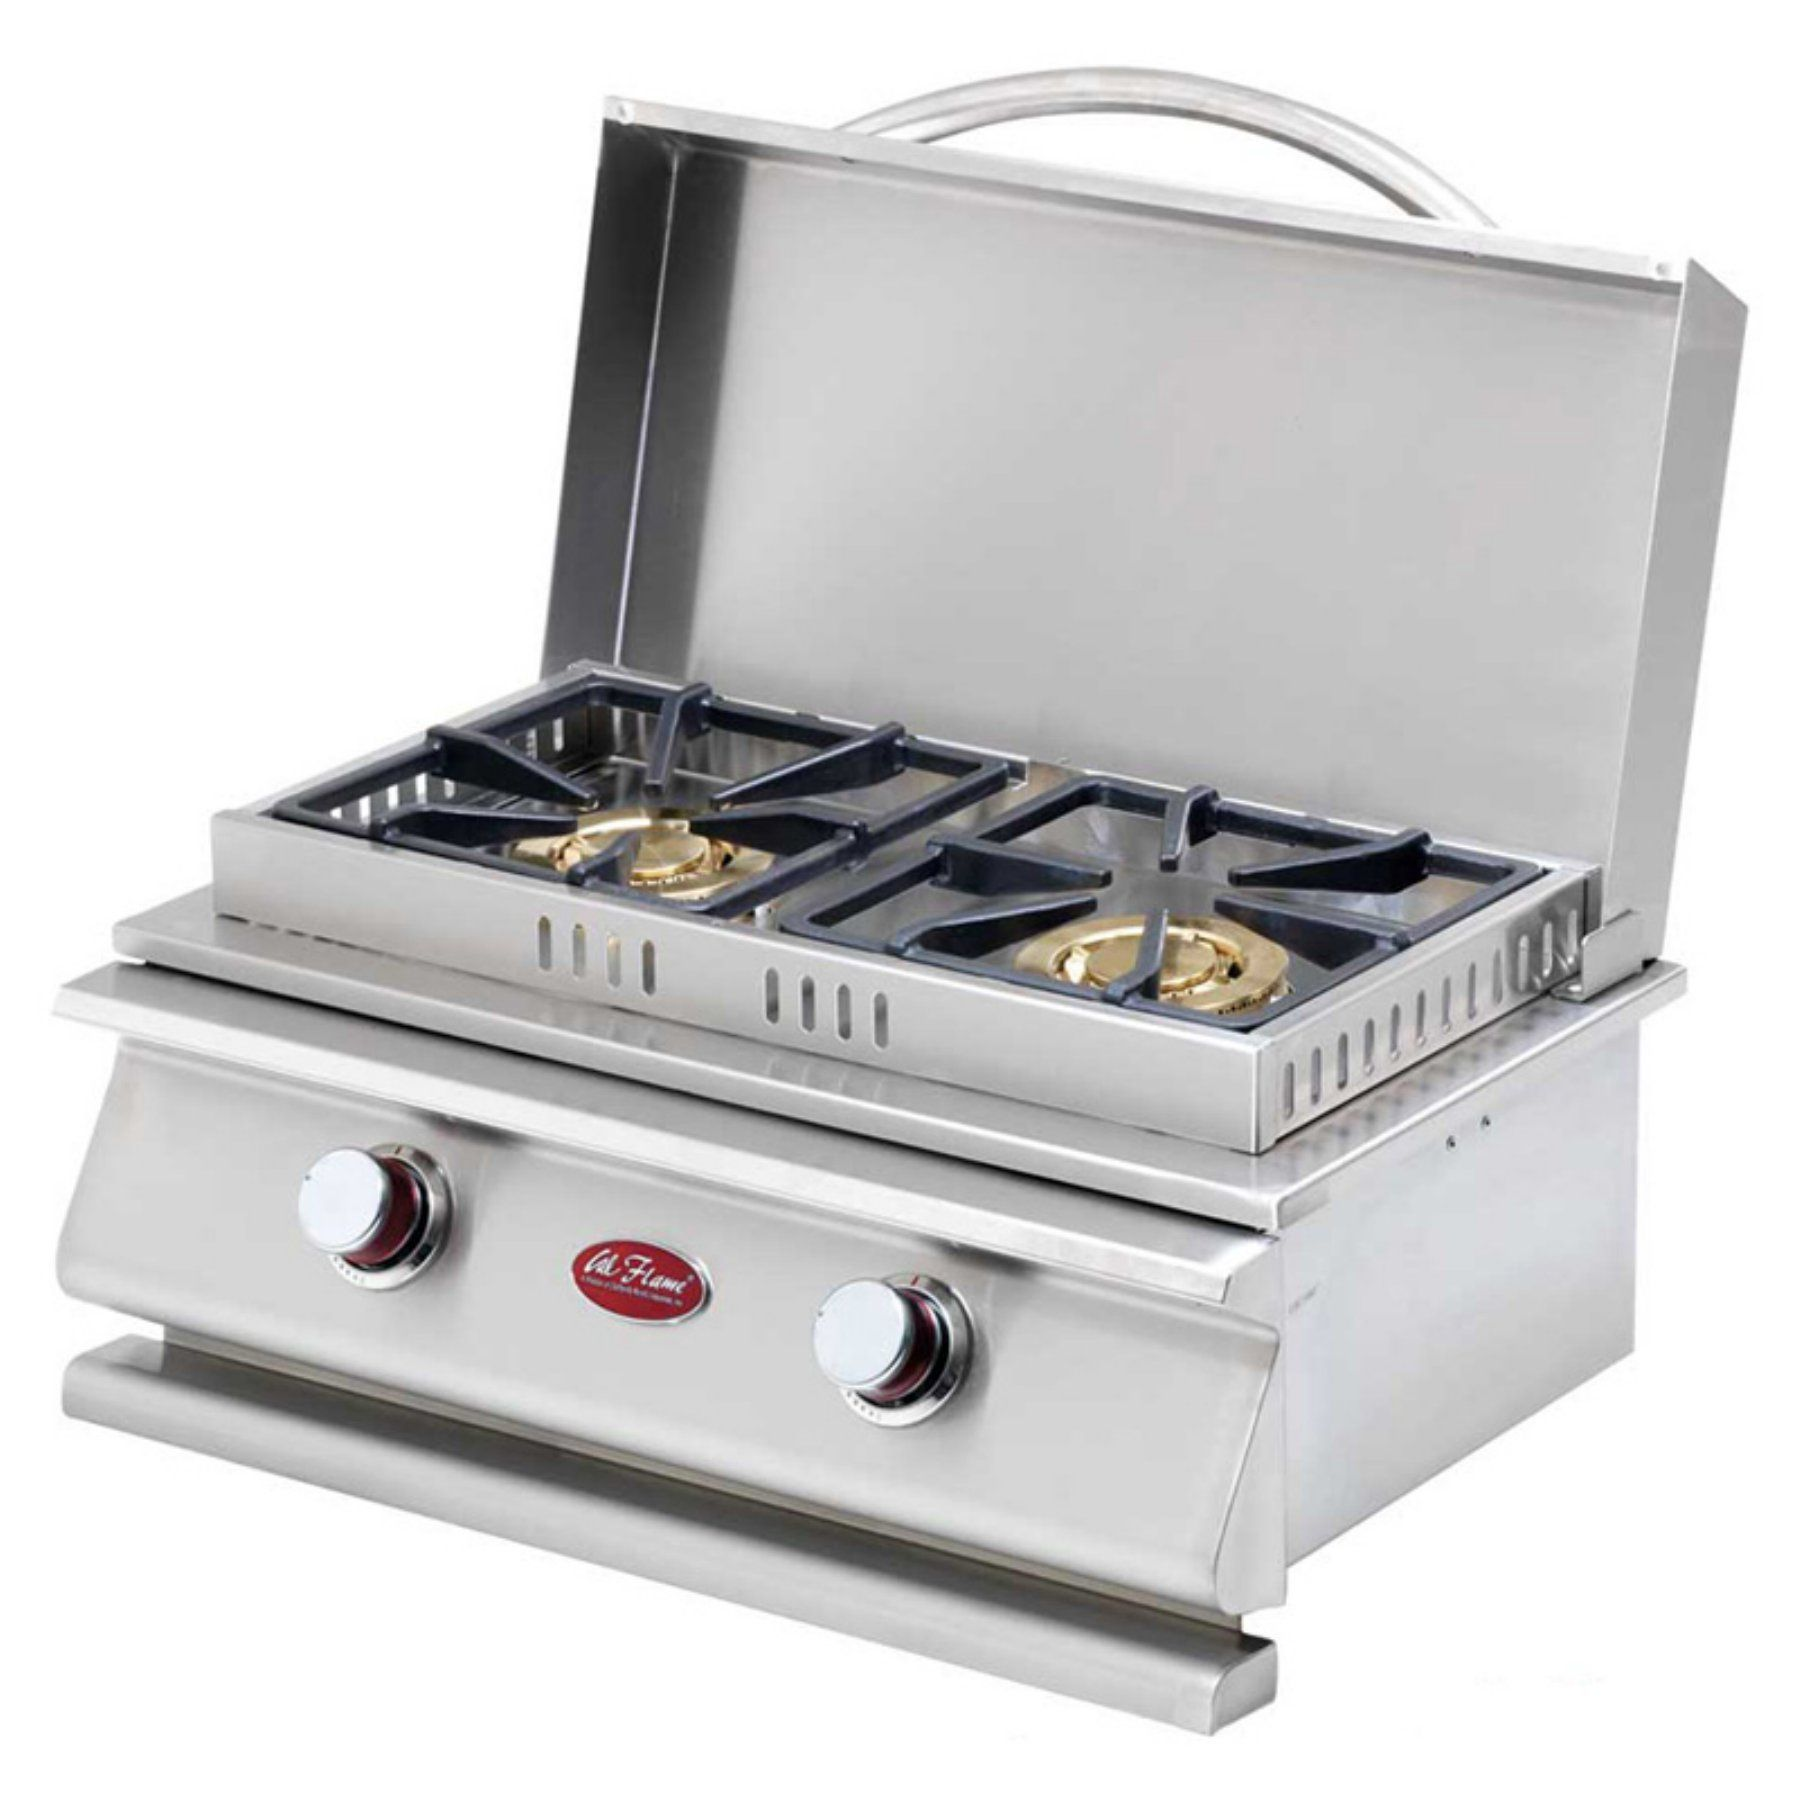 Cal Flame Deluxe Double Side By Side Burner Bbq08954p Hn Built In Grill Cal Flame Outdoor Kitchen